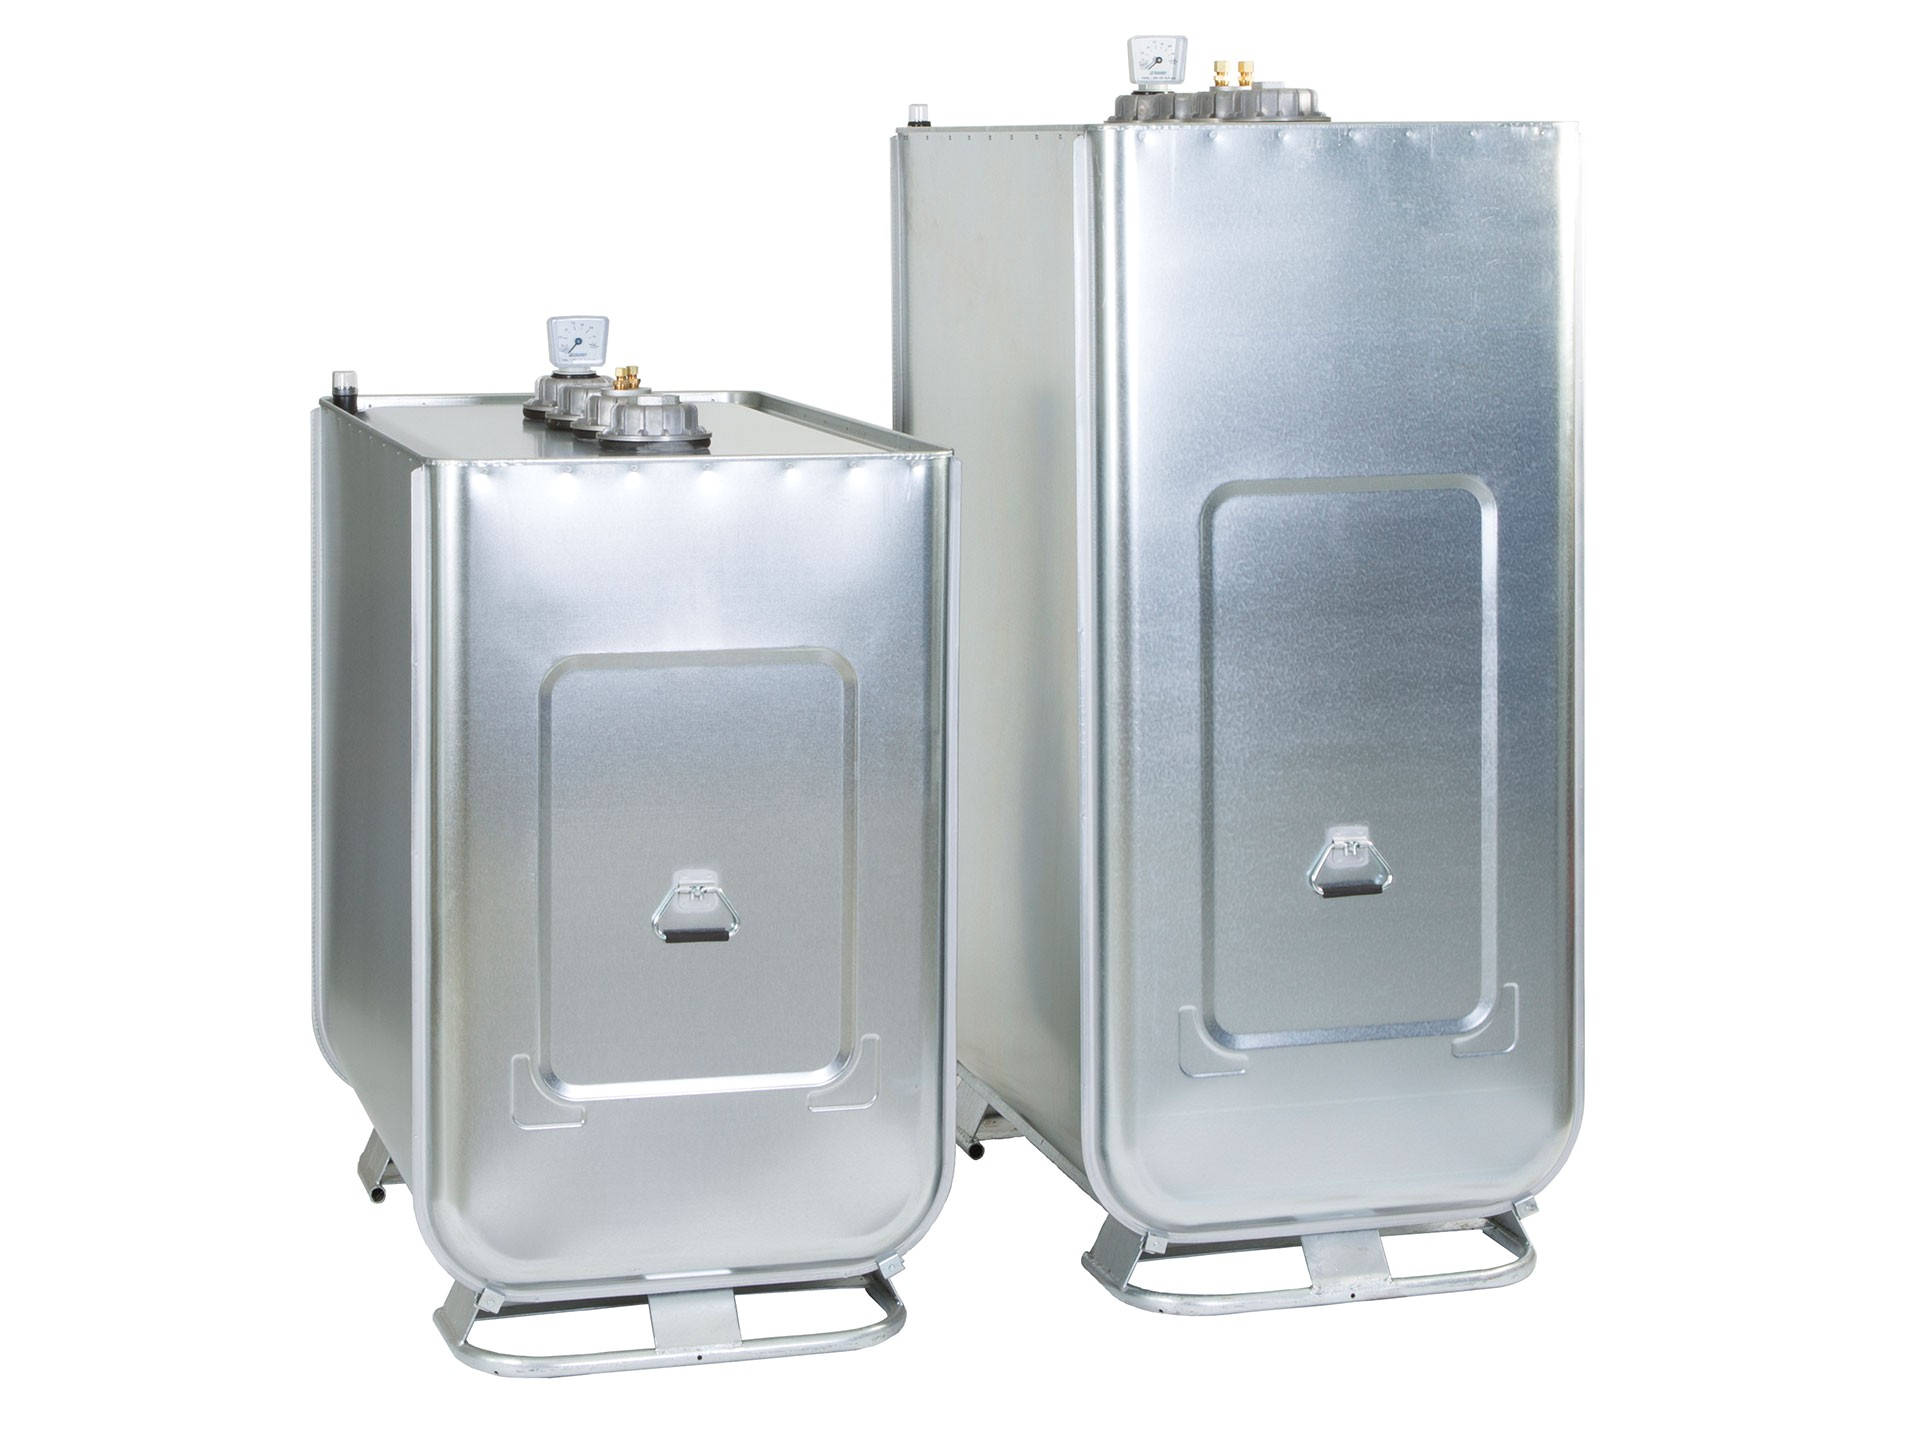 Granby Oil Tanks Prices 2 In 1 Double Wall Oil Tanks Granby Industries